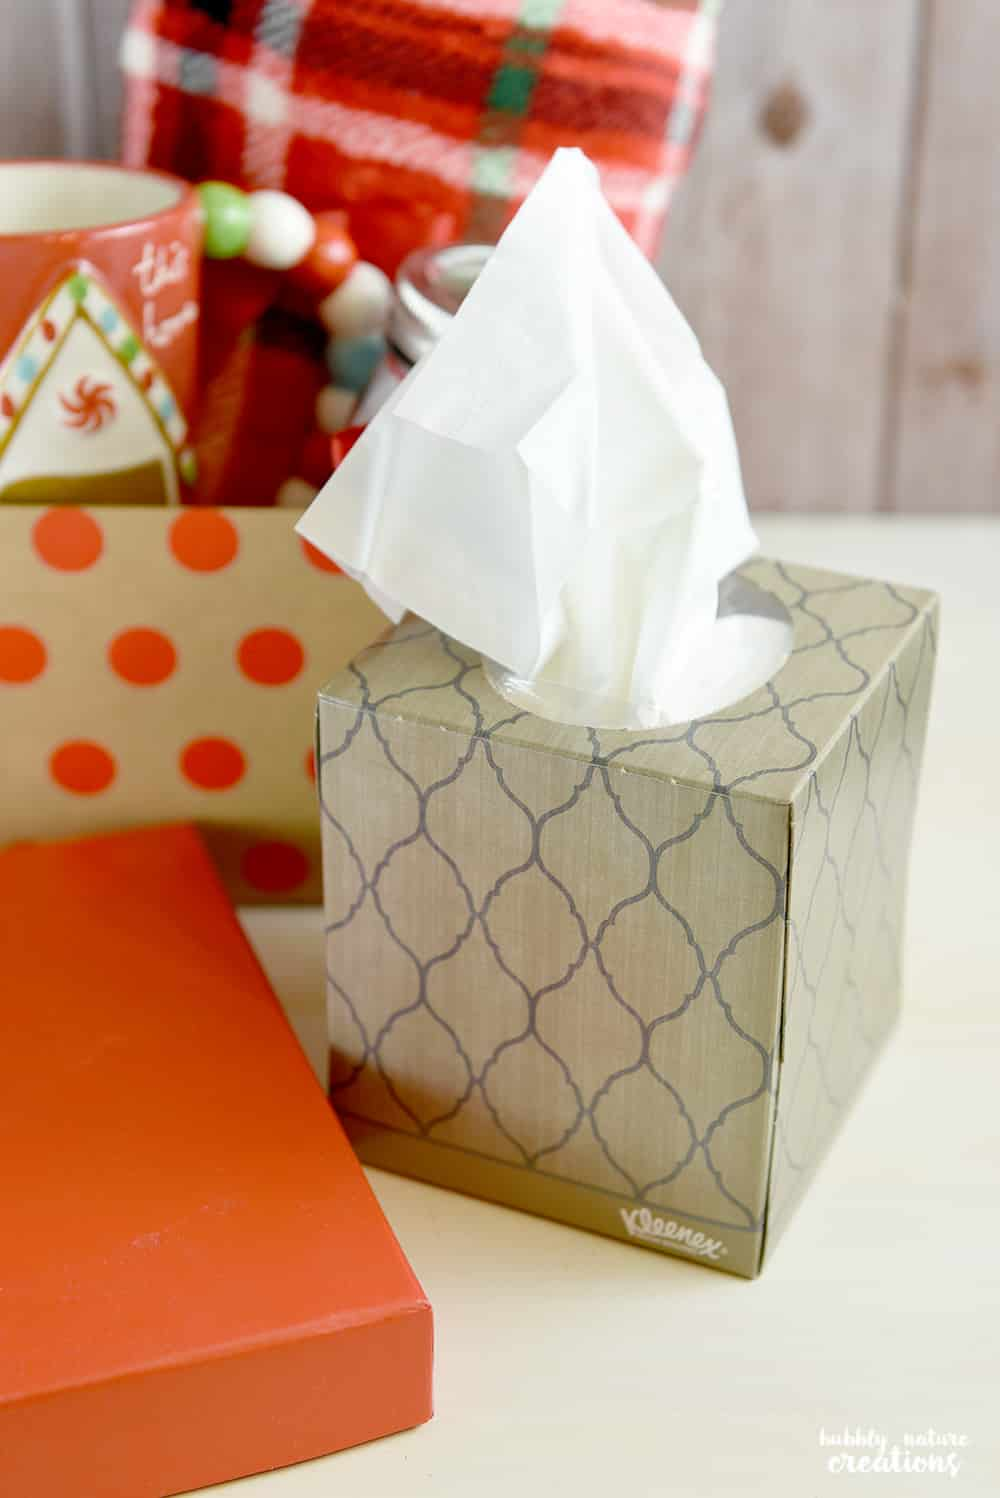 Winter Care Kit Gift! Know someone battling the cold or flu this season? Make them this easy kit!